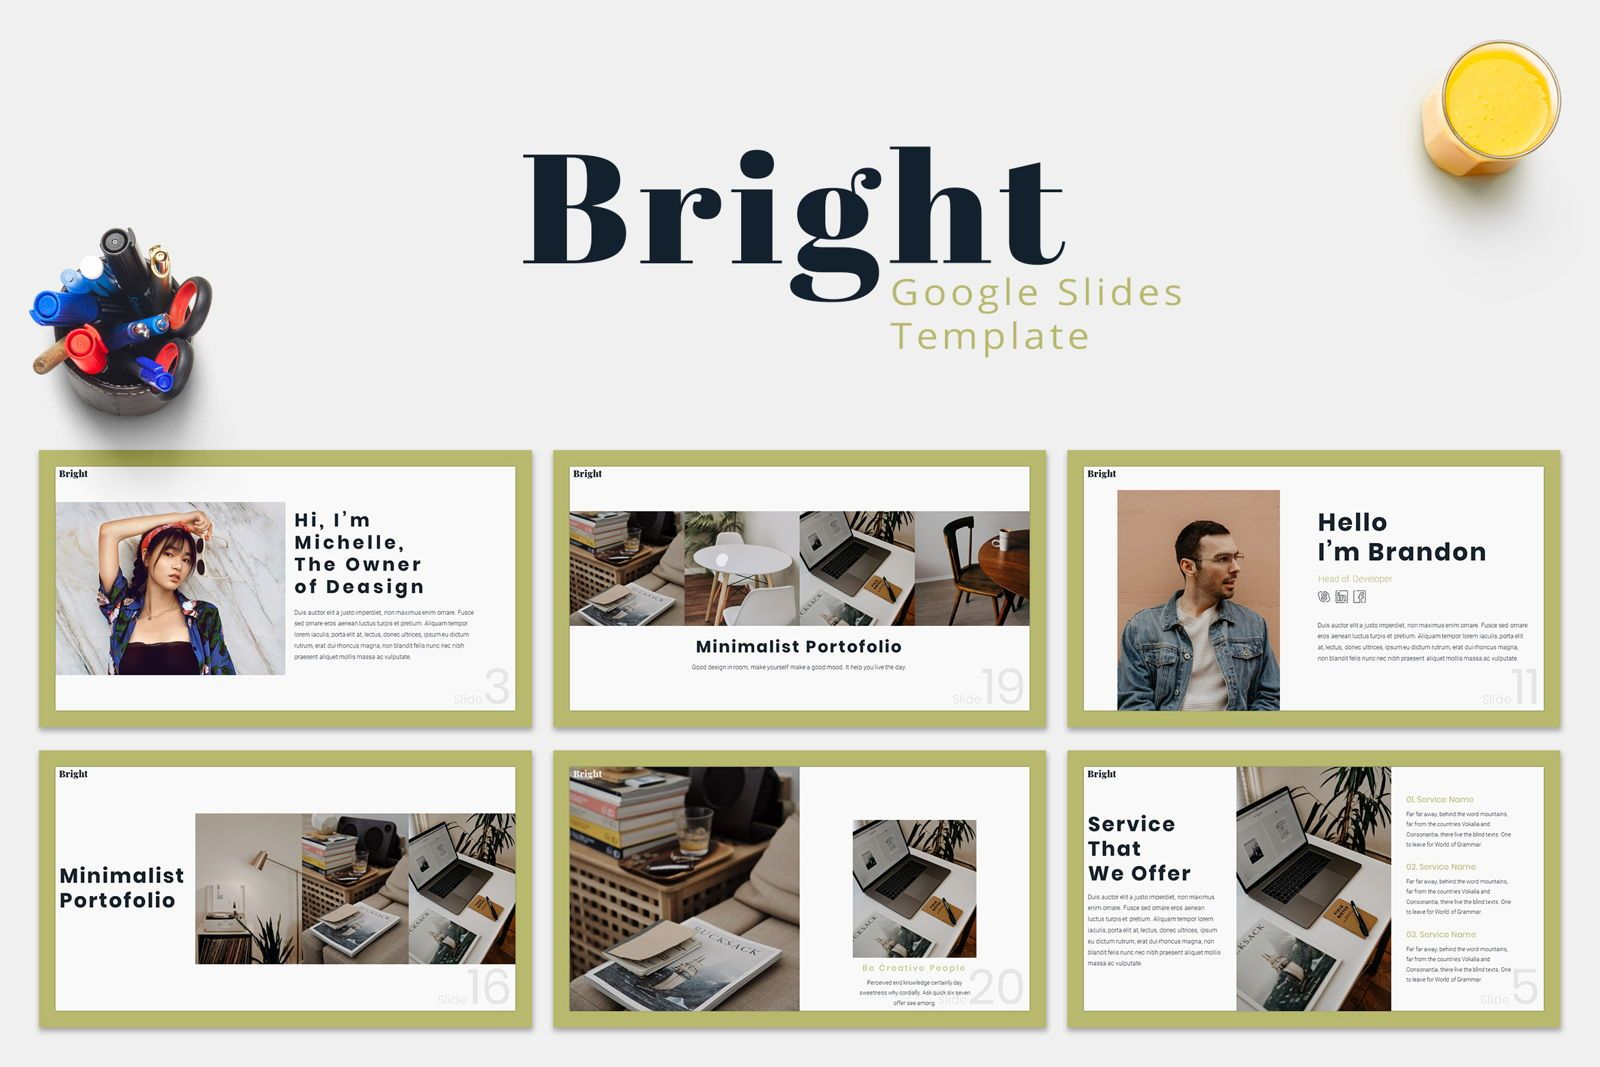 Bright - Google Slides Template, 07587, Presentation Templates — PoweredTemplate.com